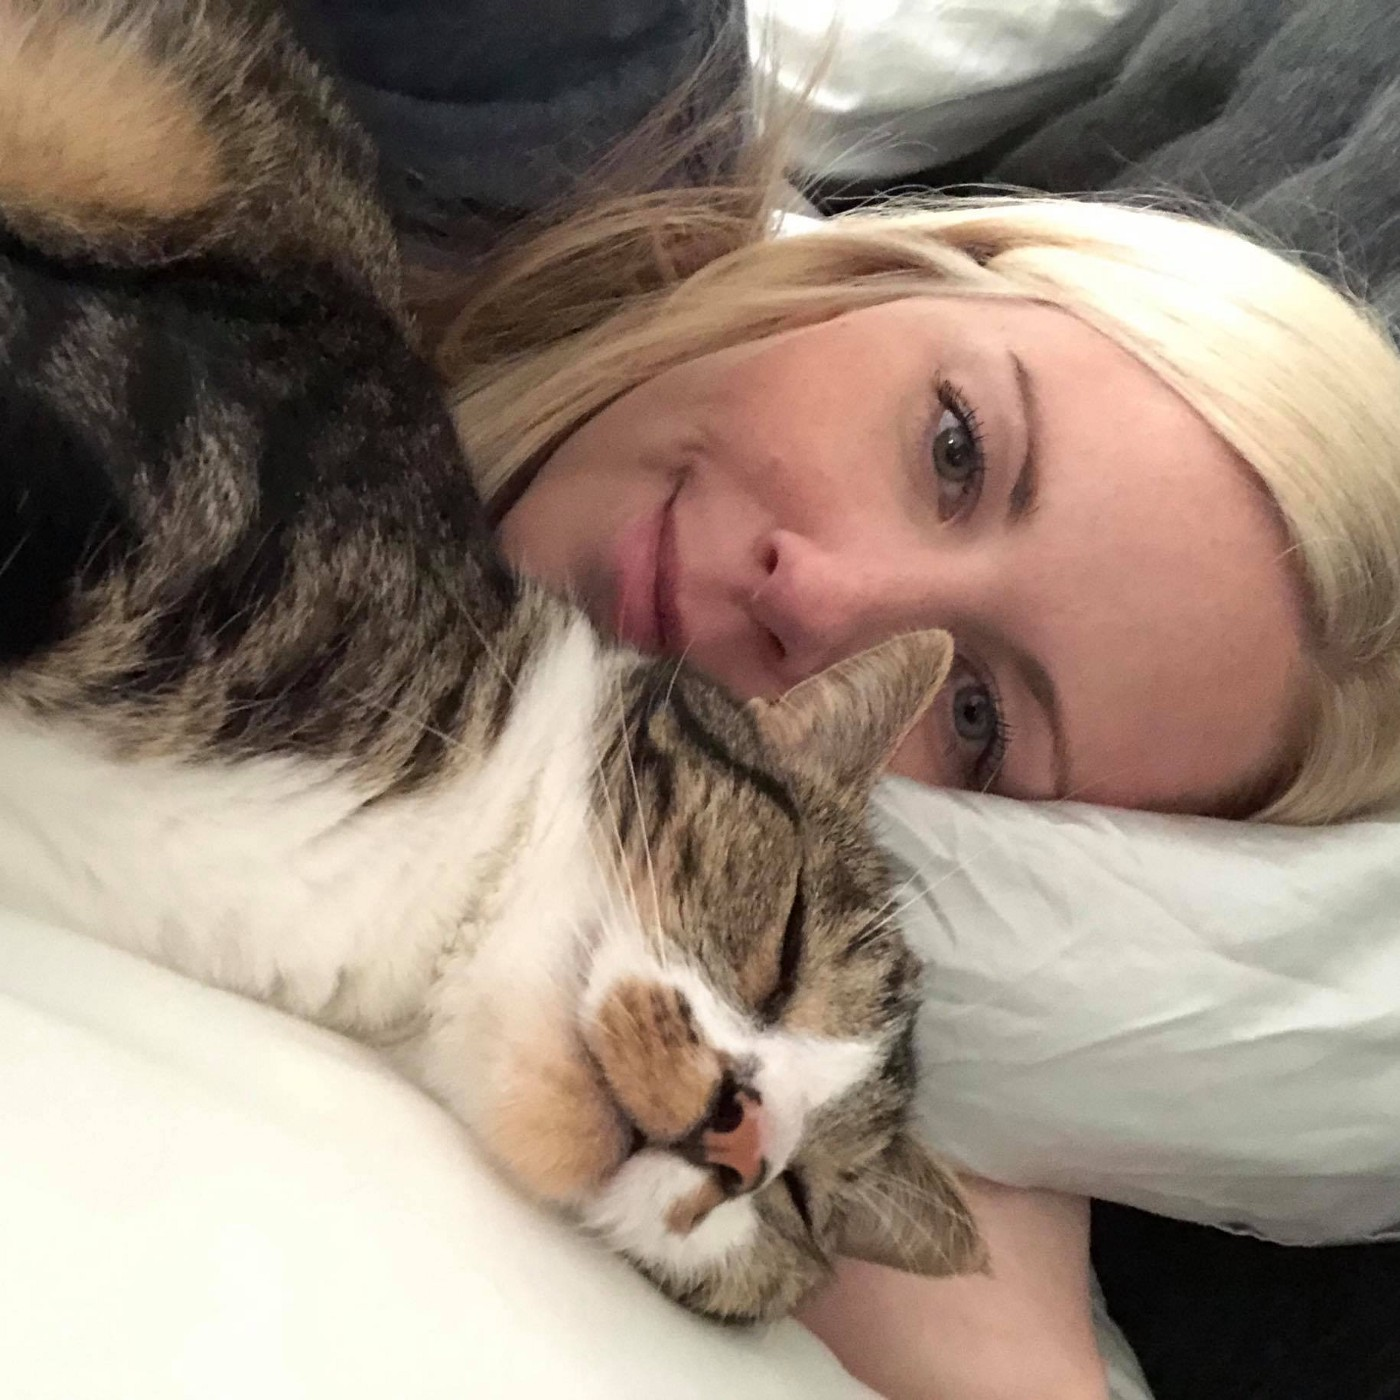 The author lying in bed with her cat sleeping in front of her.